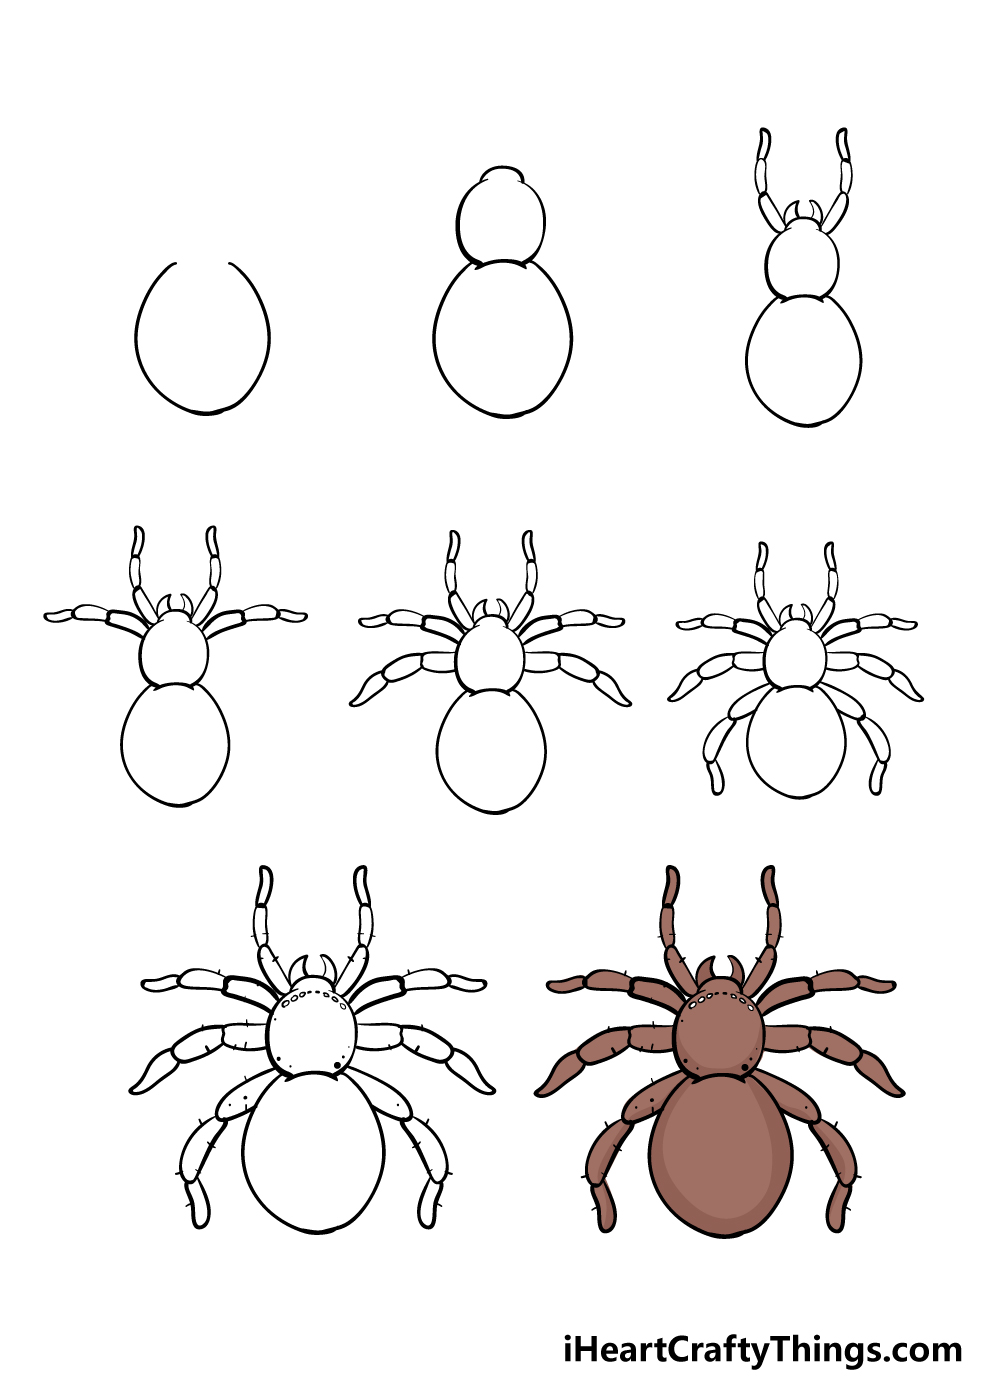 how to draw spider in 8 steps